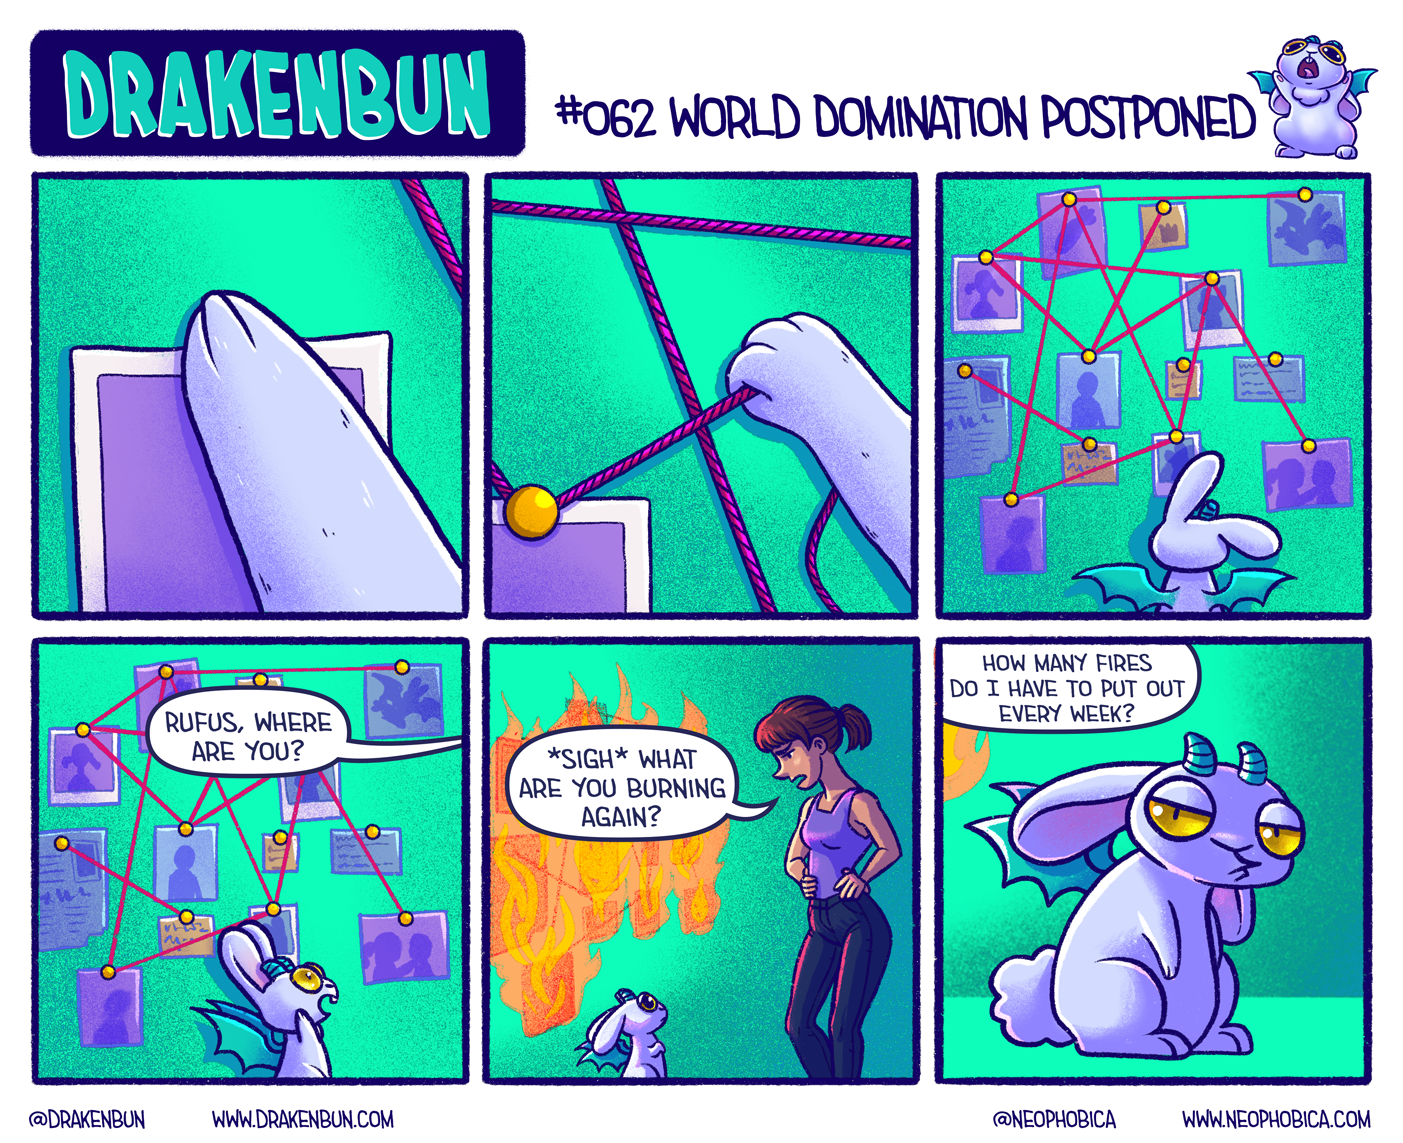 #062 World Domination Postponed